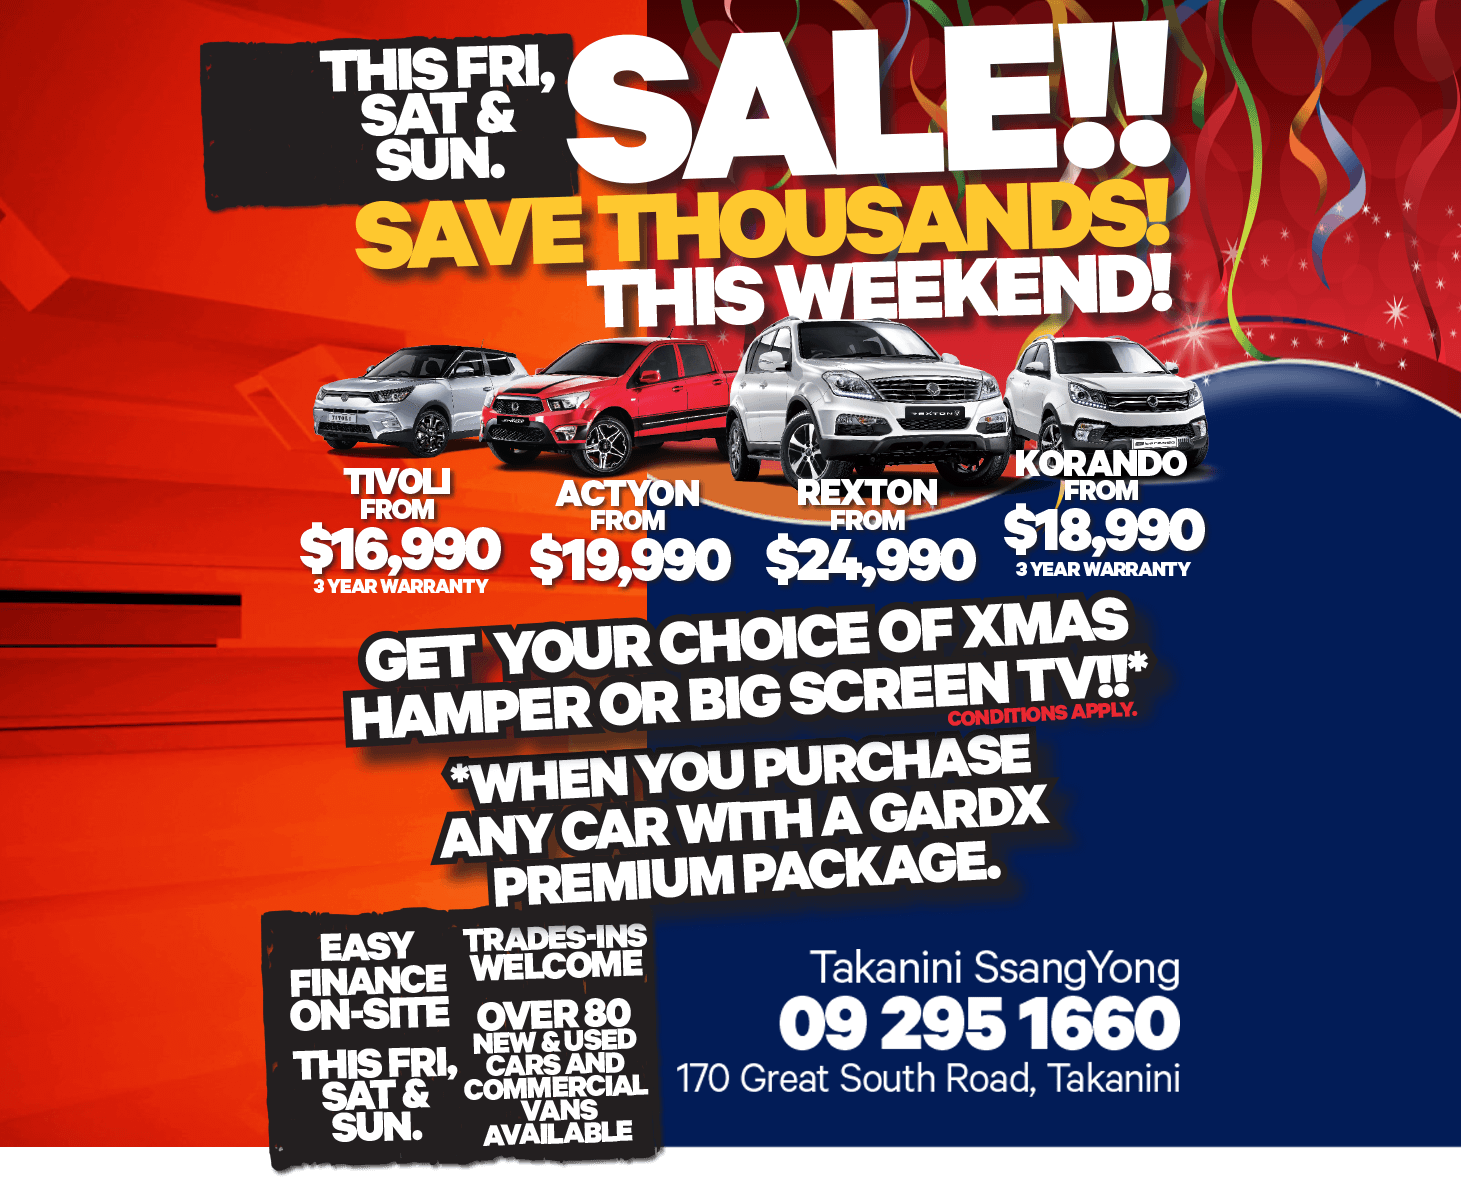 For a limited time, save on an all-new SsangYong model this holiday at Takanini SsangYong!